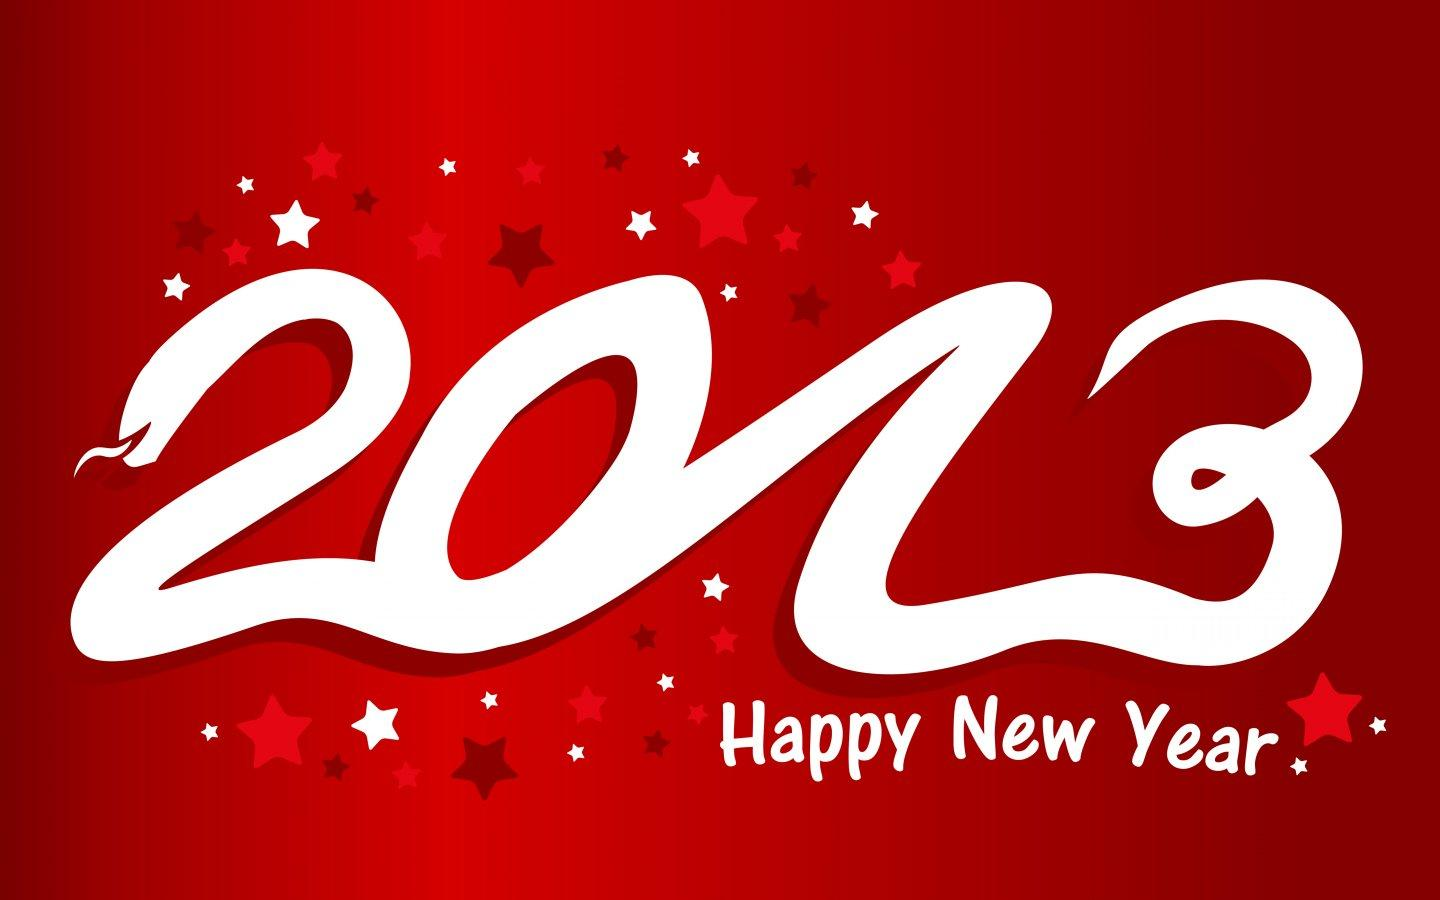 Happy-New-Year-2013-hd-best-wallpapers (1)